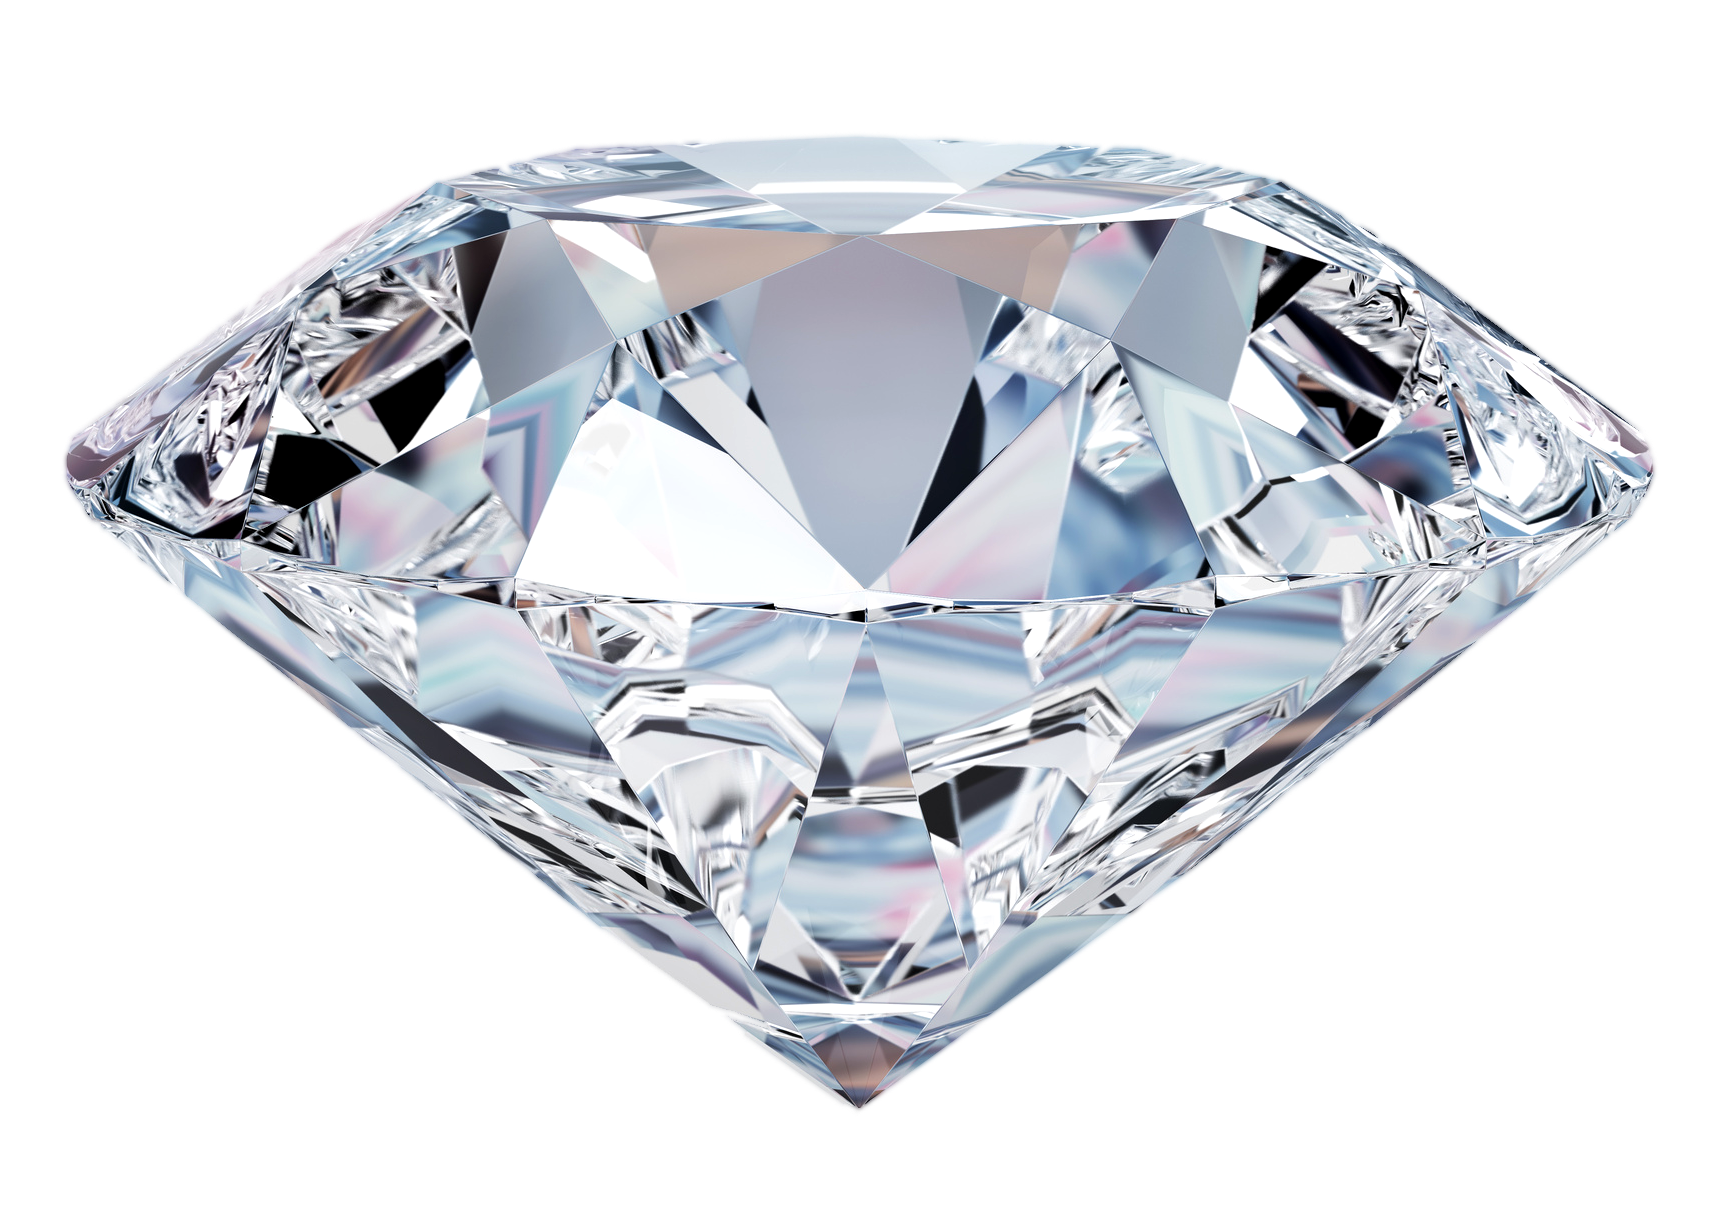 diamond png transparent images download #13427